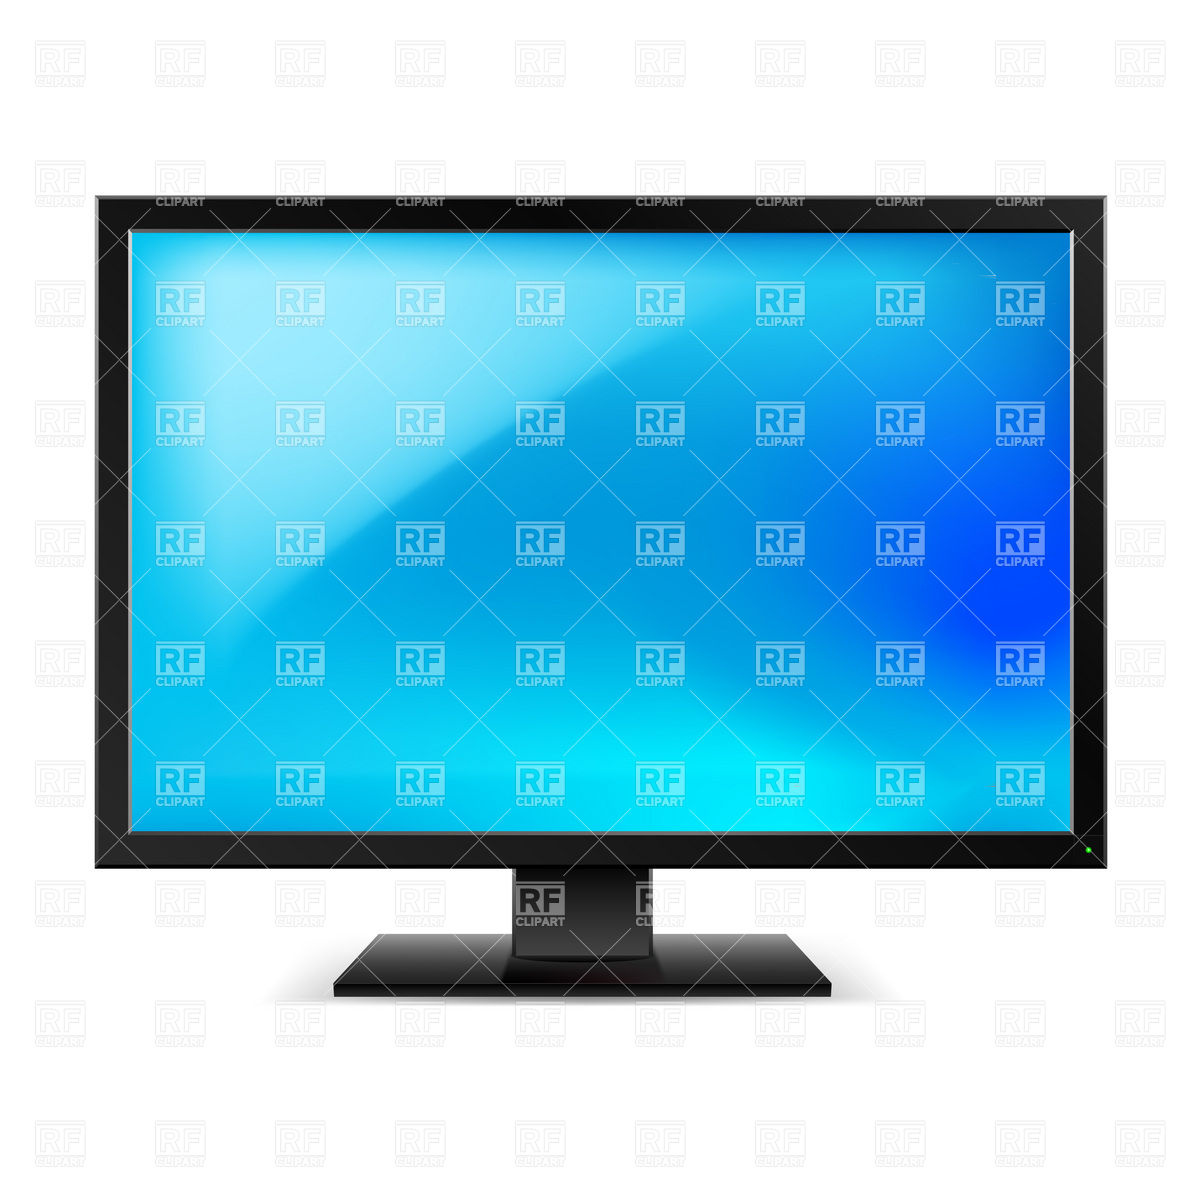 1200x1200 Blank Lcd Tv Set Or Monitor Vector Image Vector Artwork Of